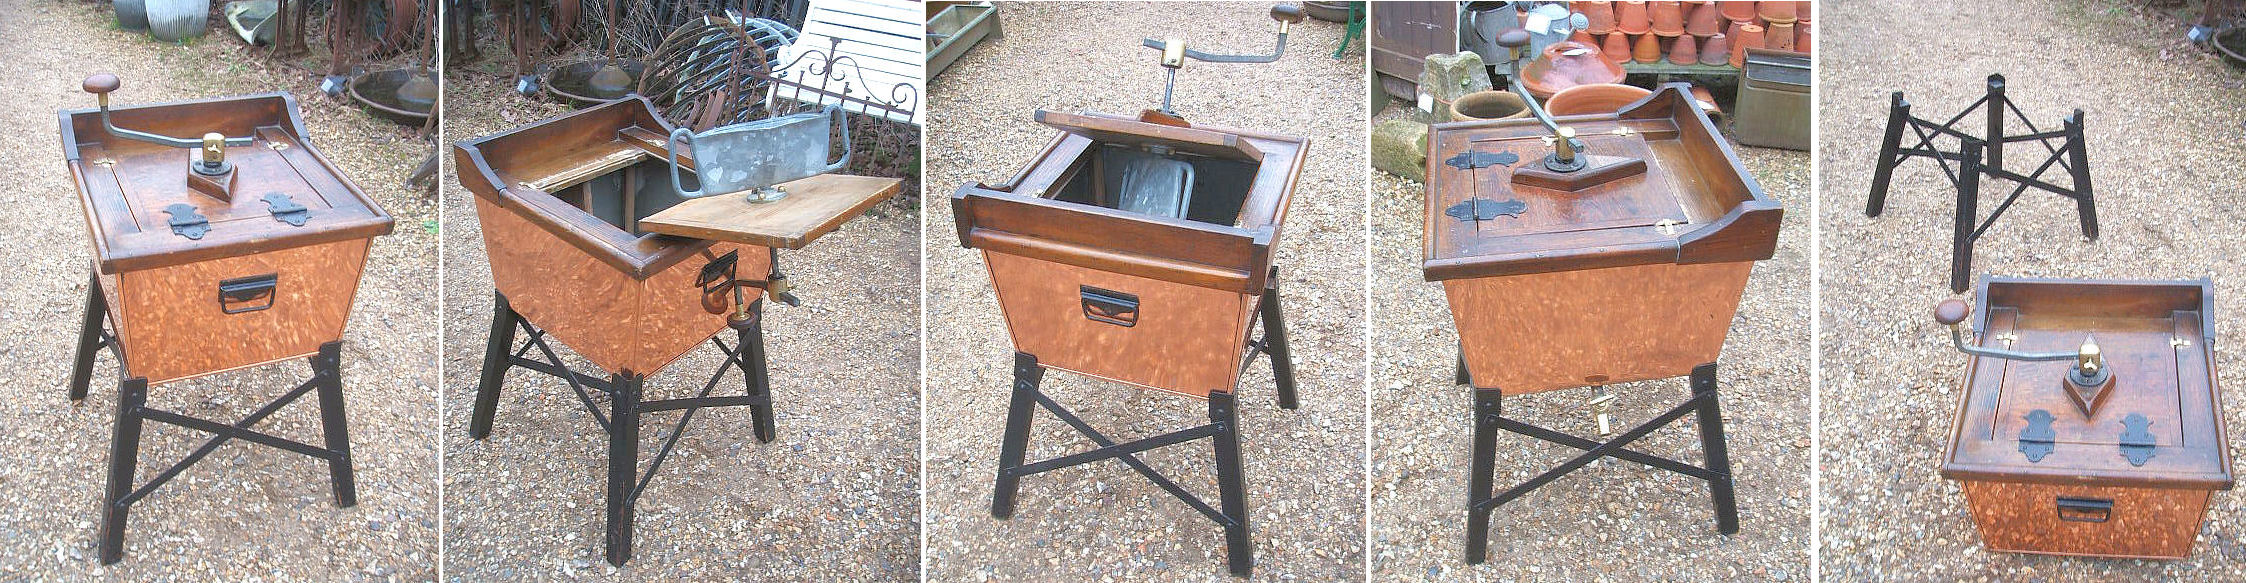 Copper Washing Machine WP11 - Below Stairs of Hungerford